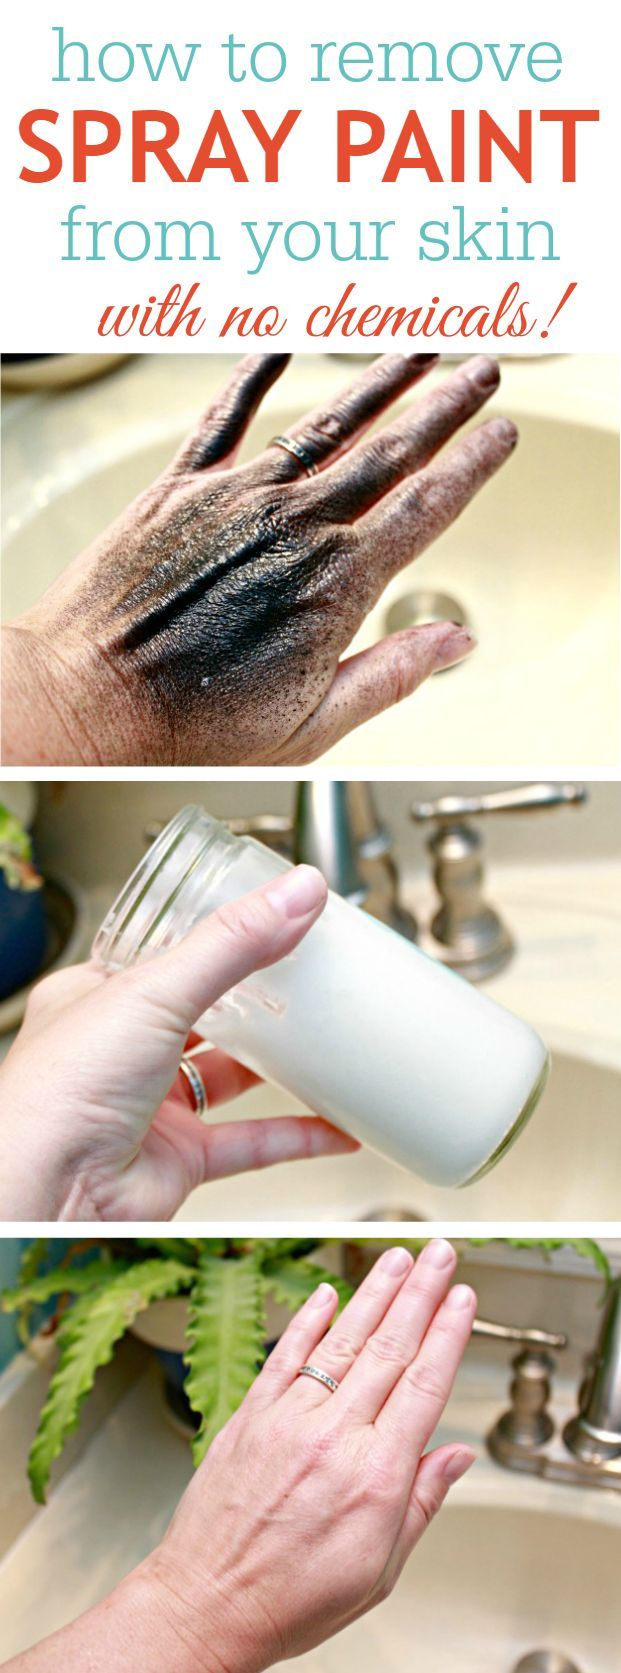 How To Remove Spray Paint From Your Skin - No Chemicals! - Mom 4 Real